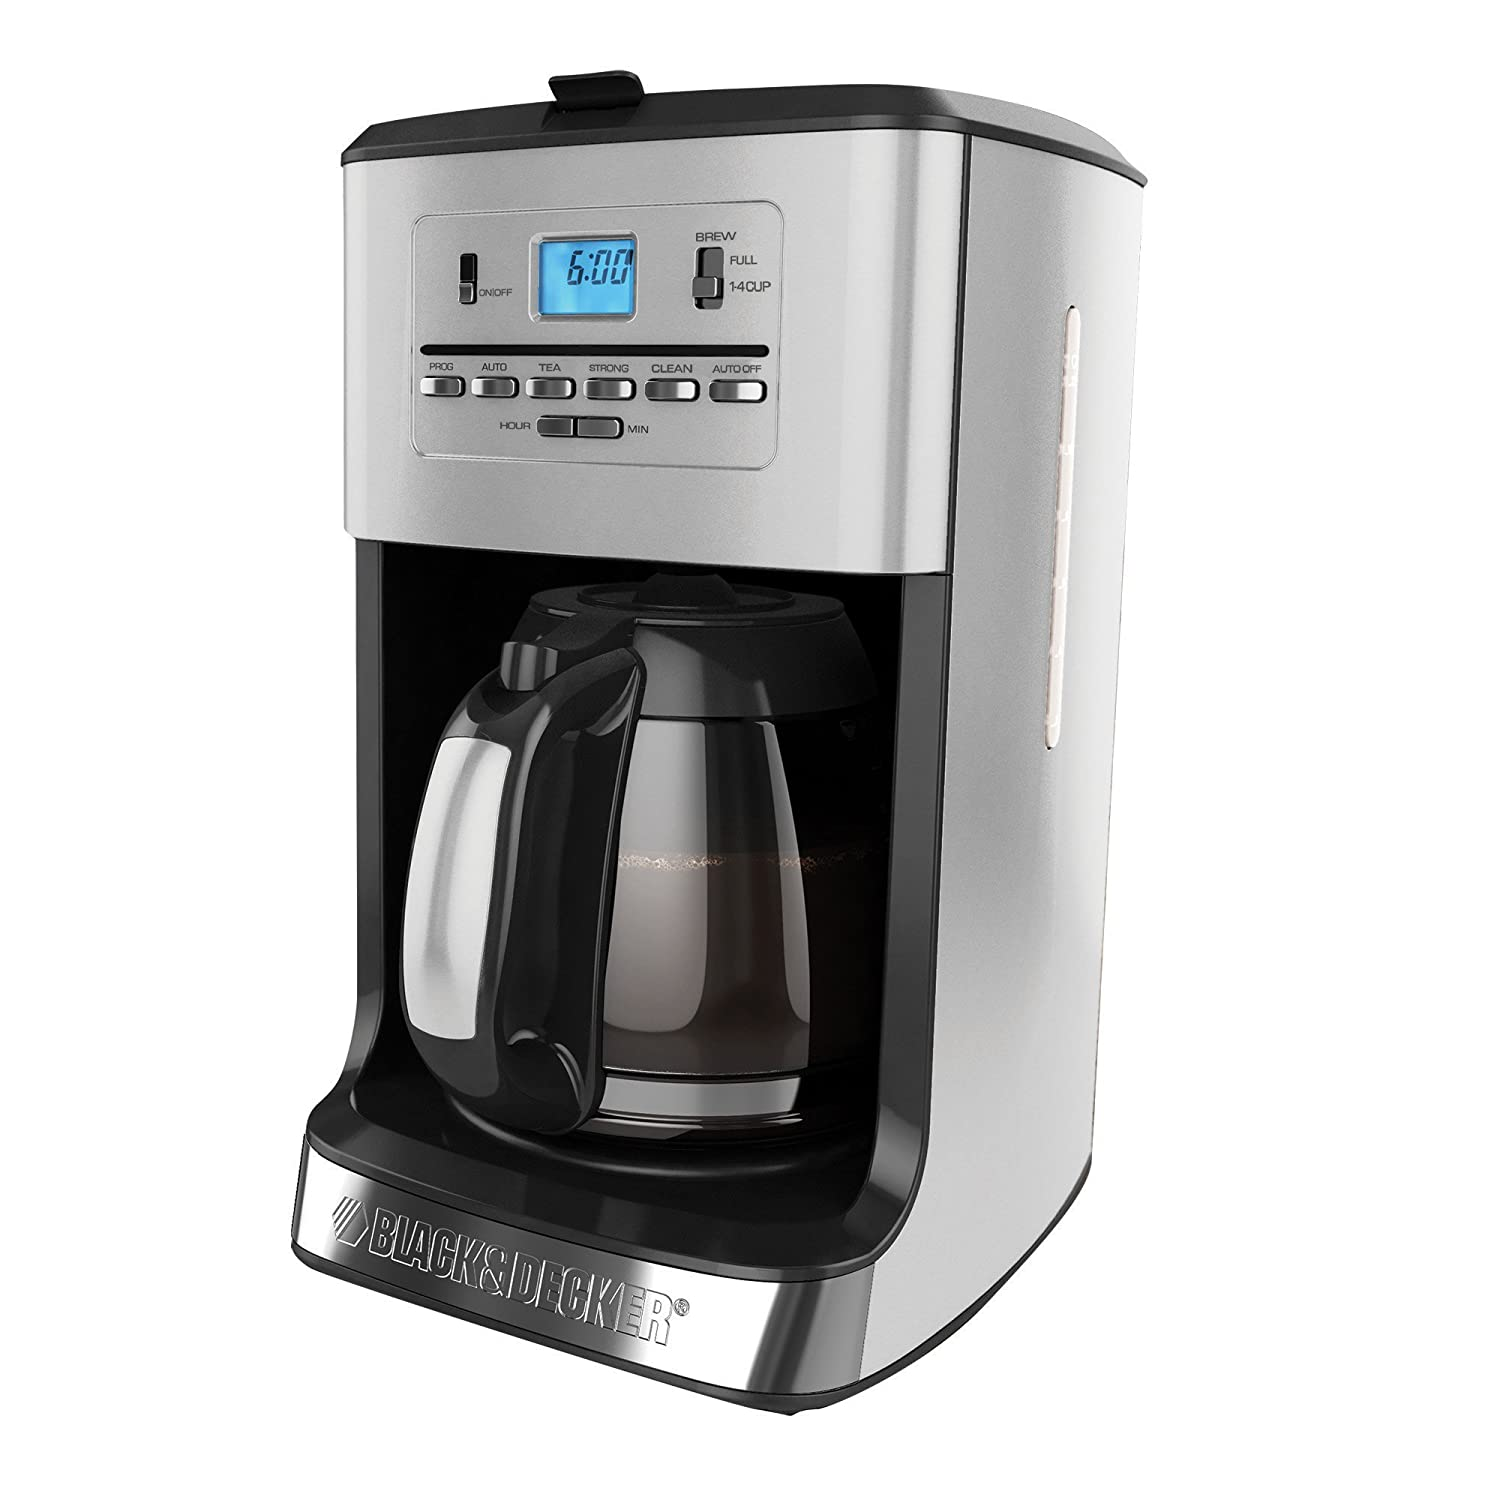 Black and decker coffee maker 12 cup programmable - Amazon Com Black Decker Cm3005s 12 Cup Tea And Coffeemaker Silver Kitchen Dining